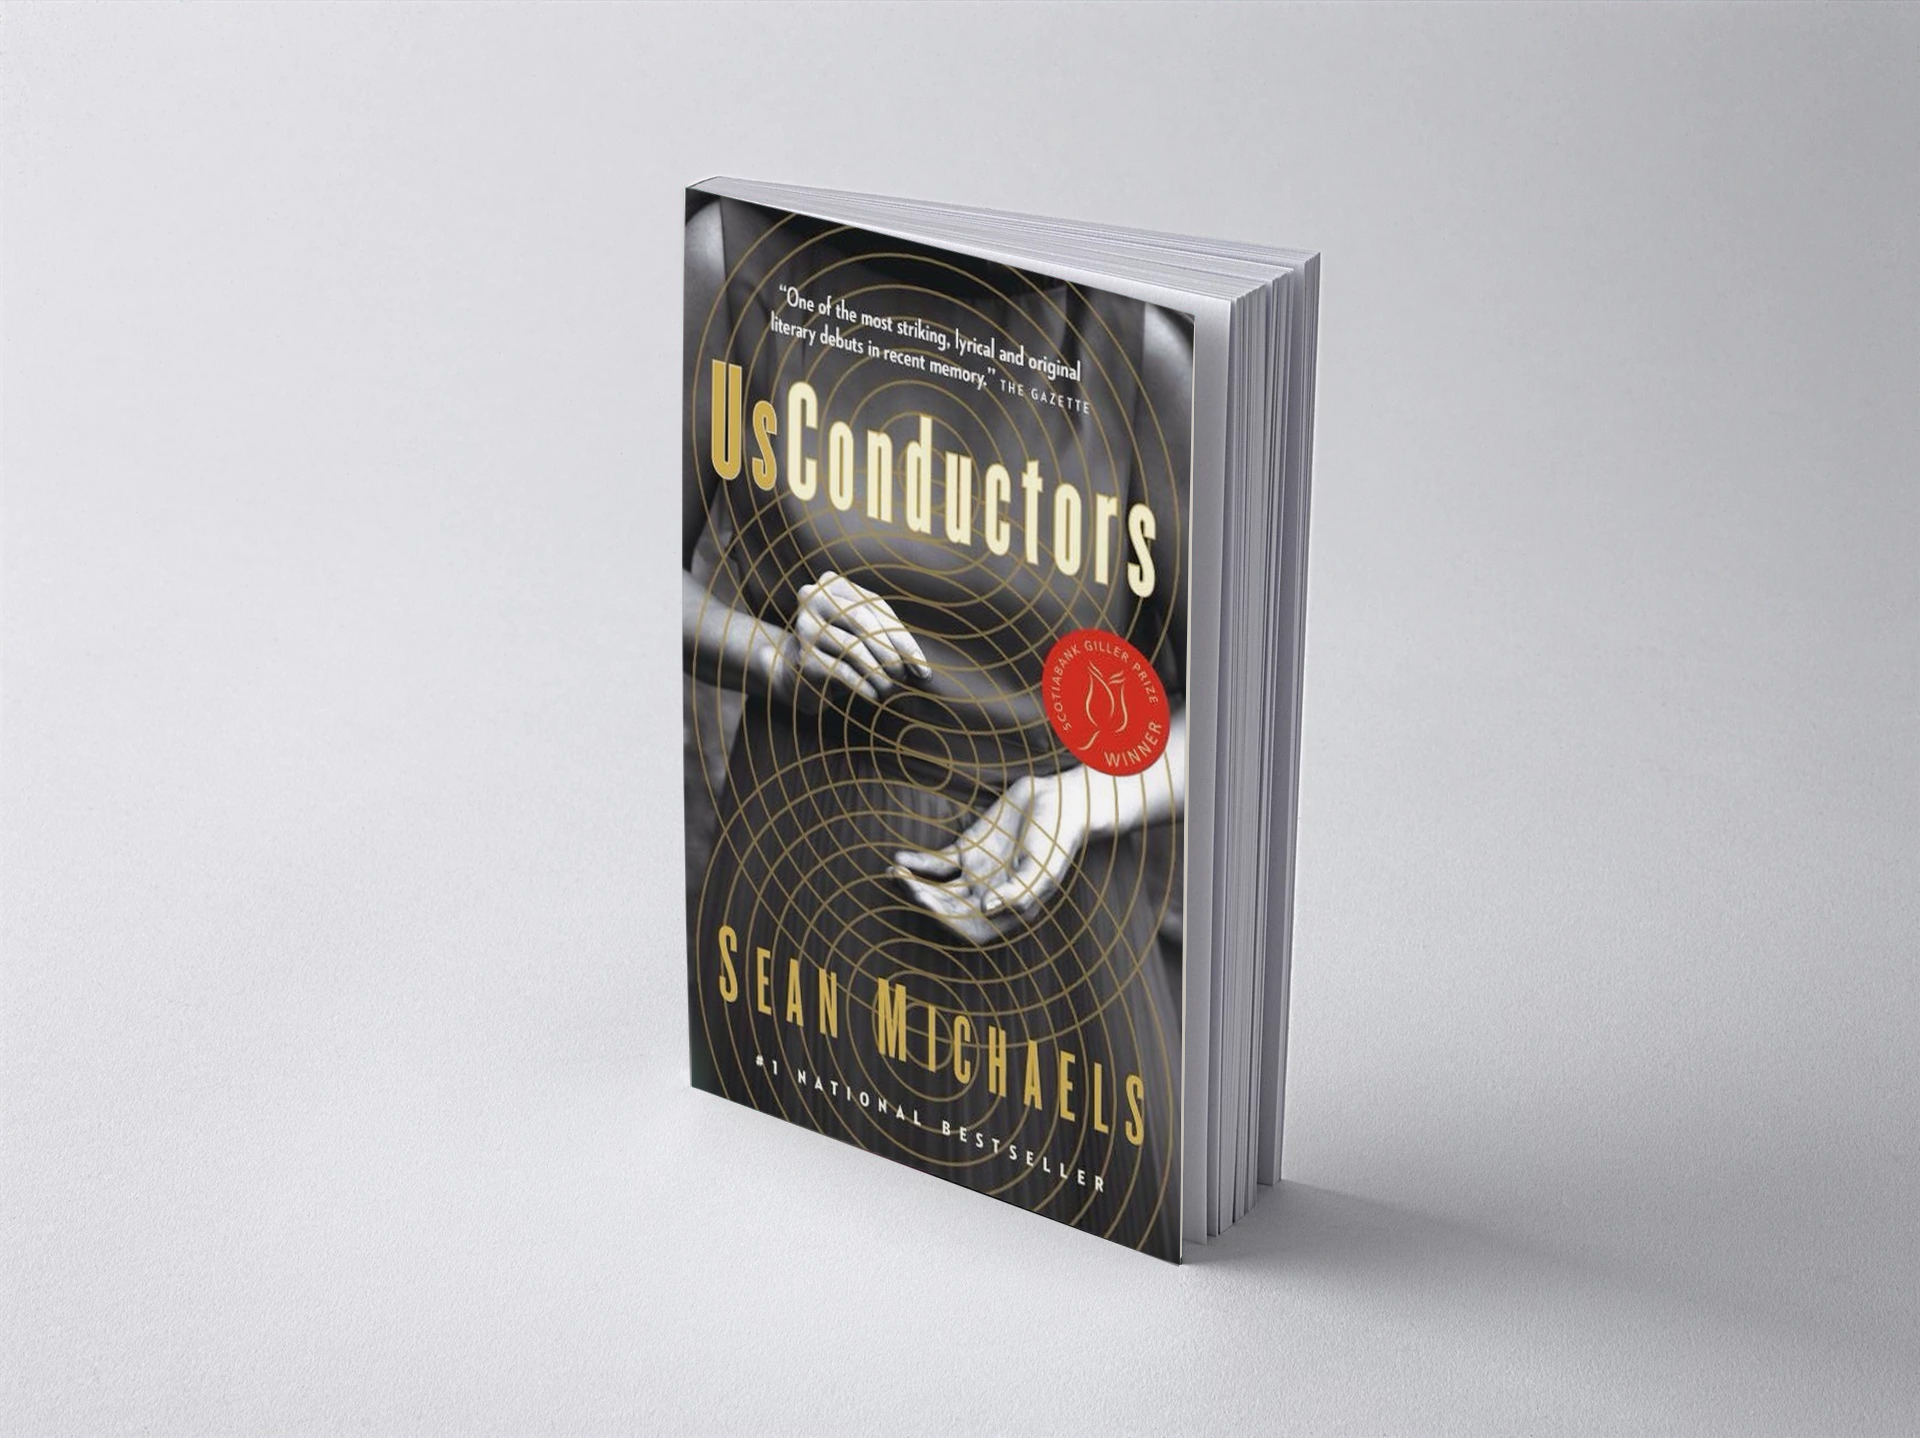 us-conductors-book-cover.png